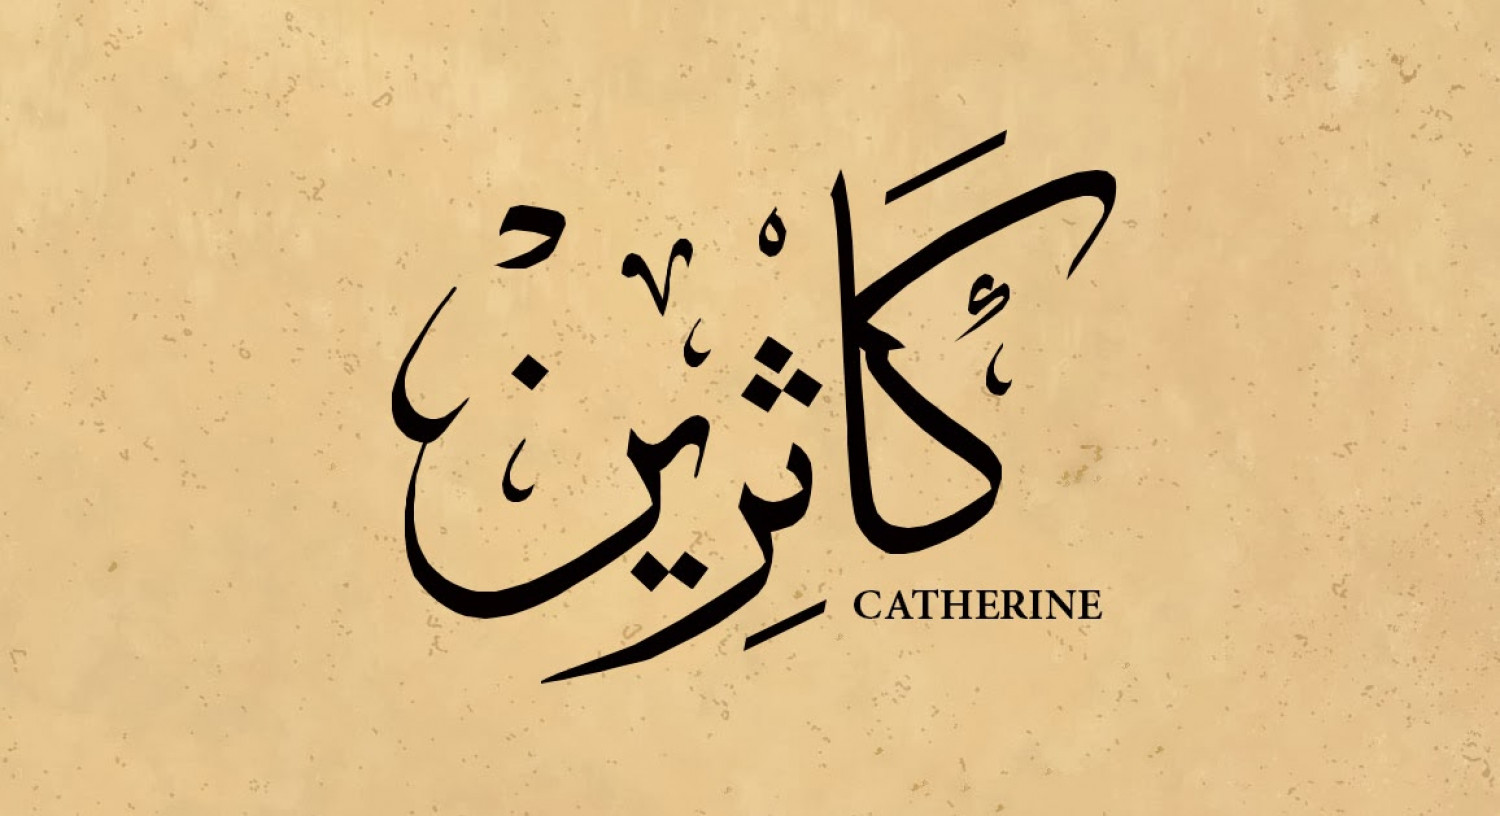 CATHERINE IN ARABIC CALLIGRAPHY Infographic